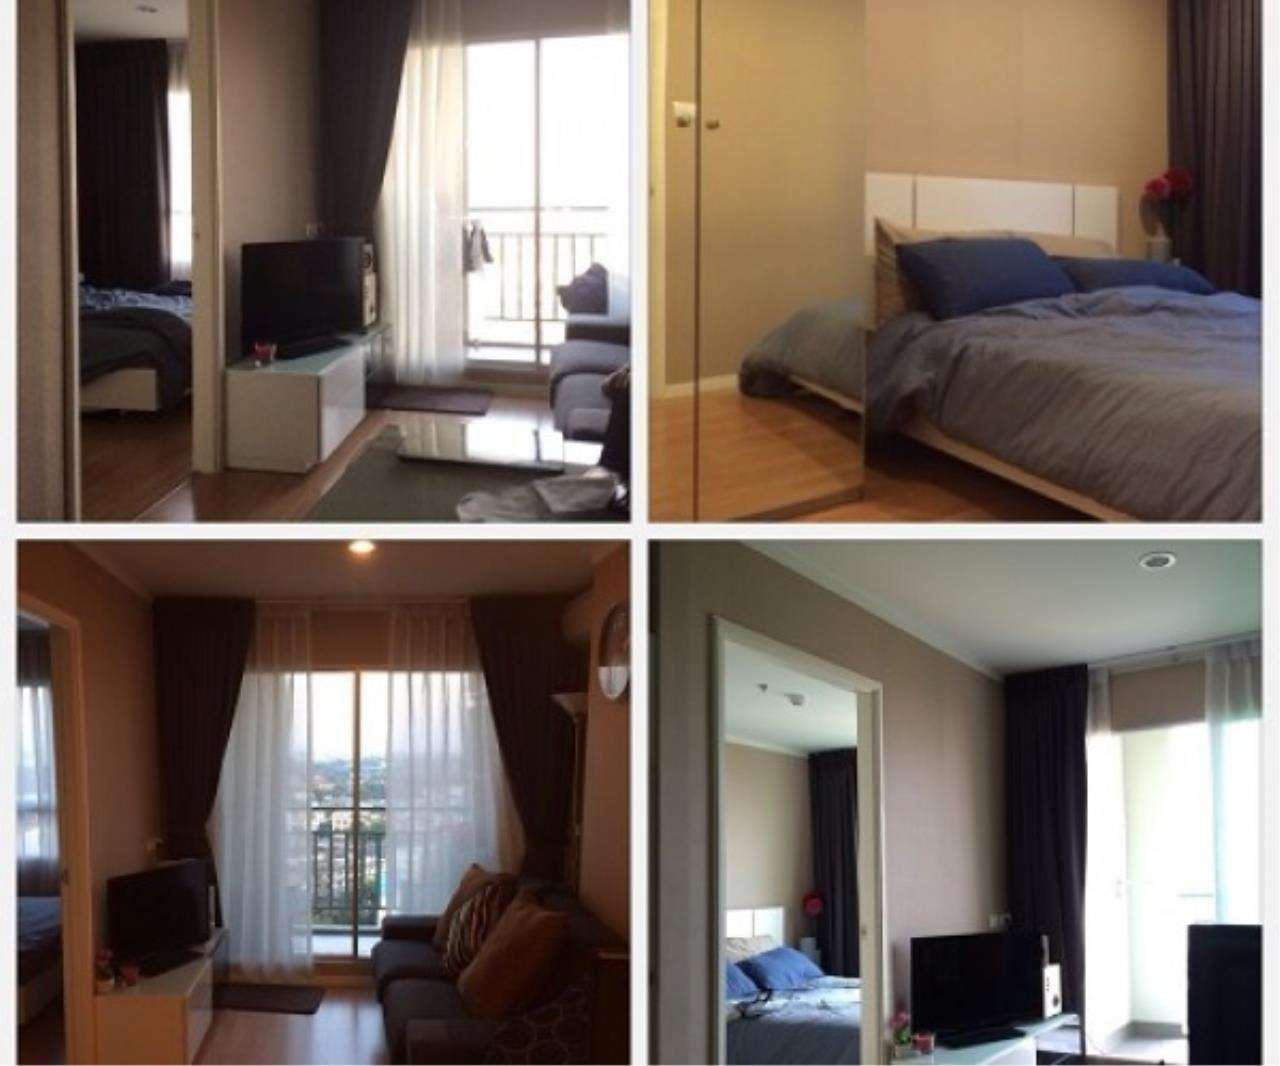 Quality Life Property Agency's **** FOR RENT! ****  !! Lumpini Ville Sukhumvit 77 / 1 Bedroom / 23 Filoor 1